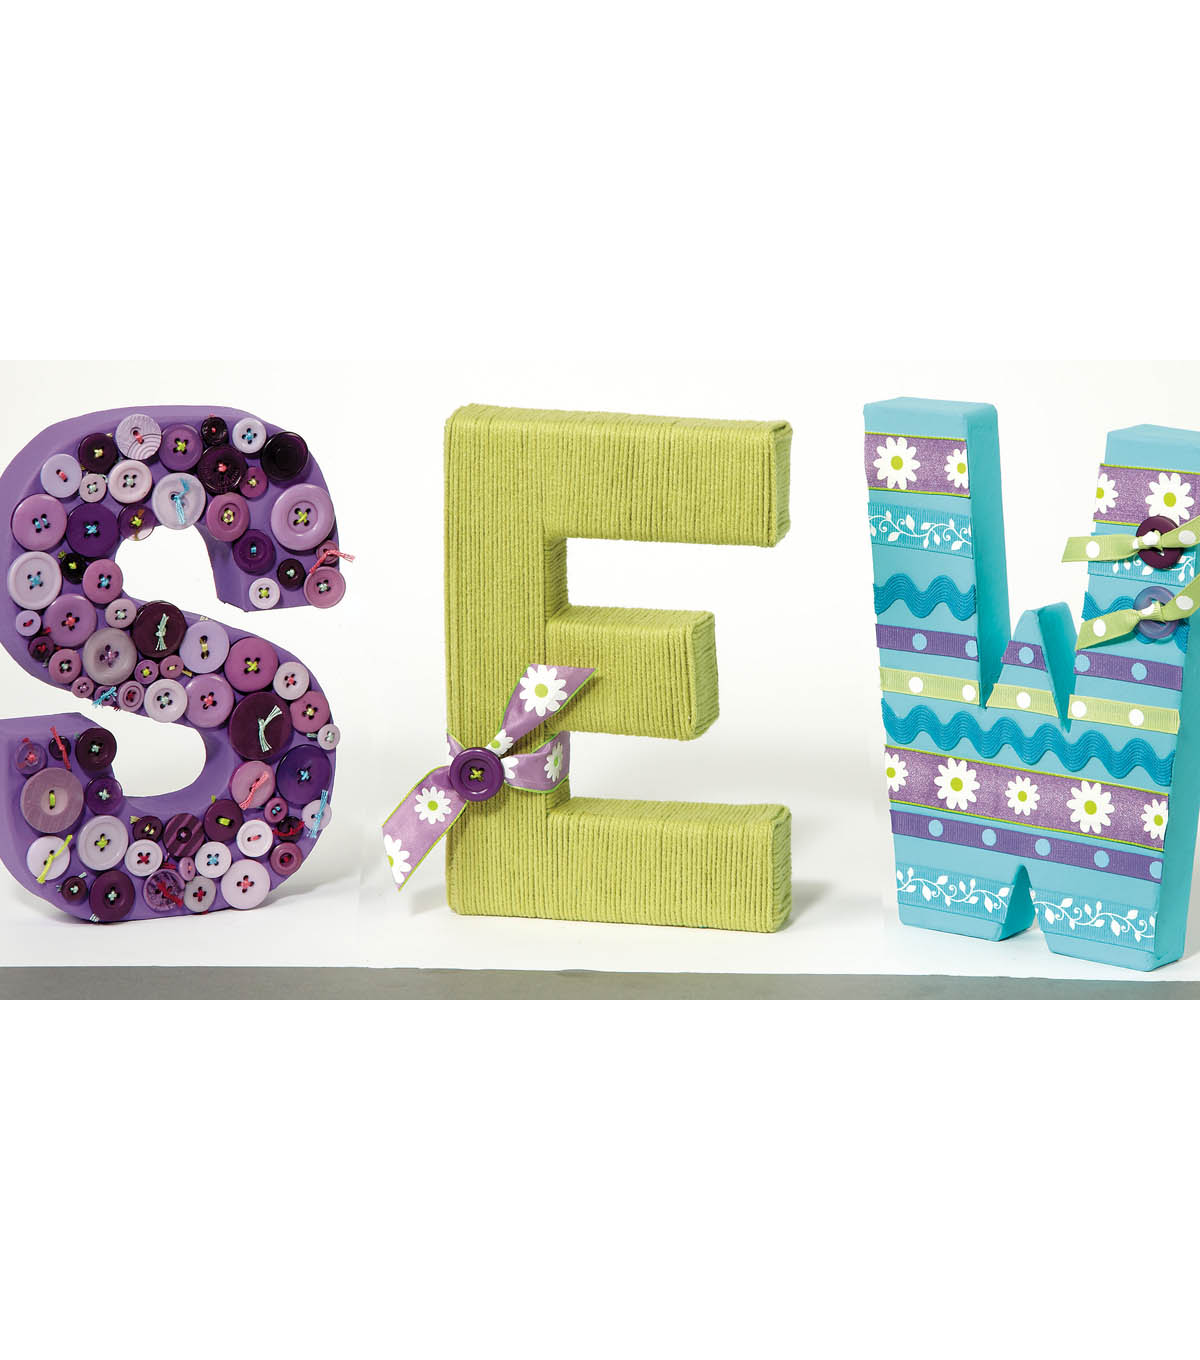 Sew Decorated Letters